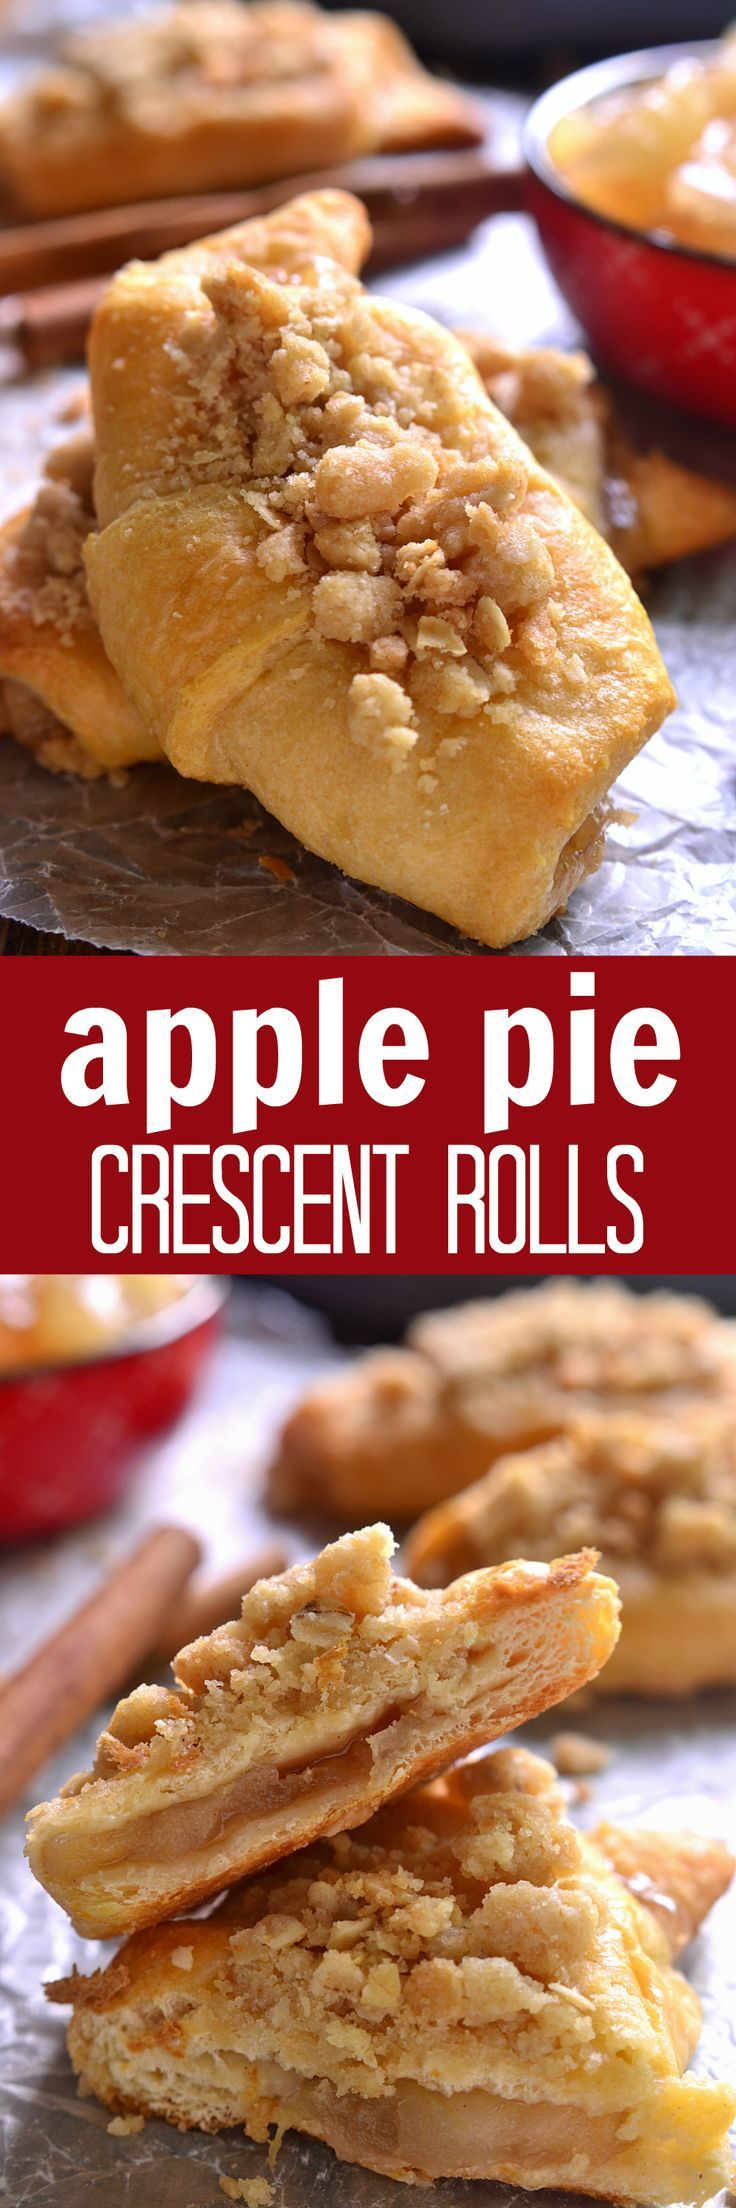 Apple Pie Crescent Rolls - all the flavors of apple pie, without all the work!: